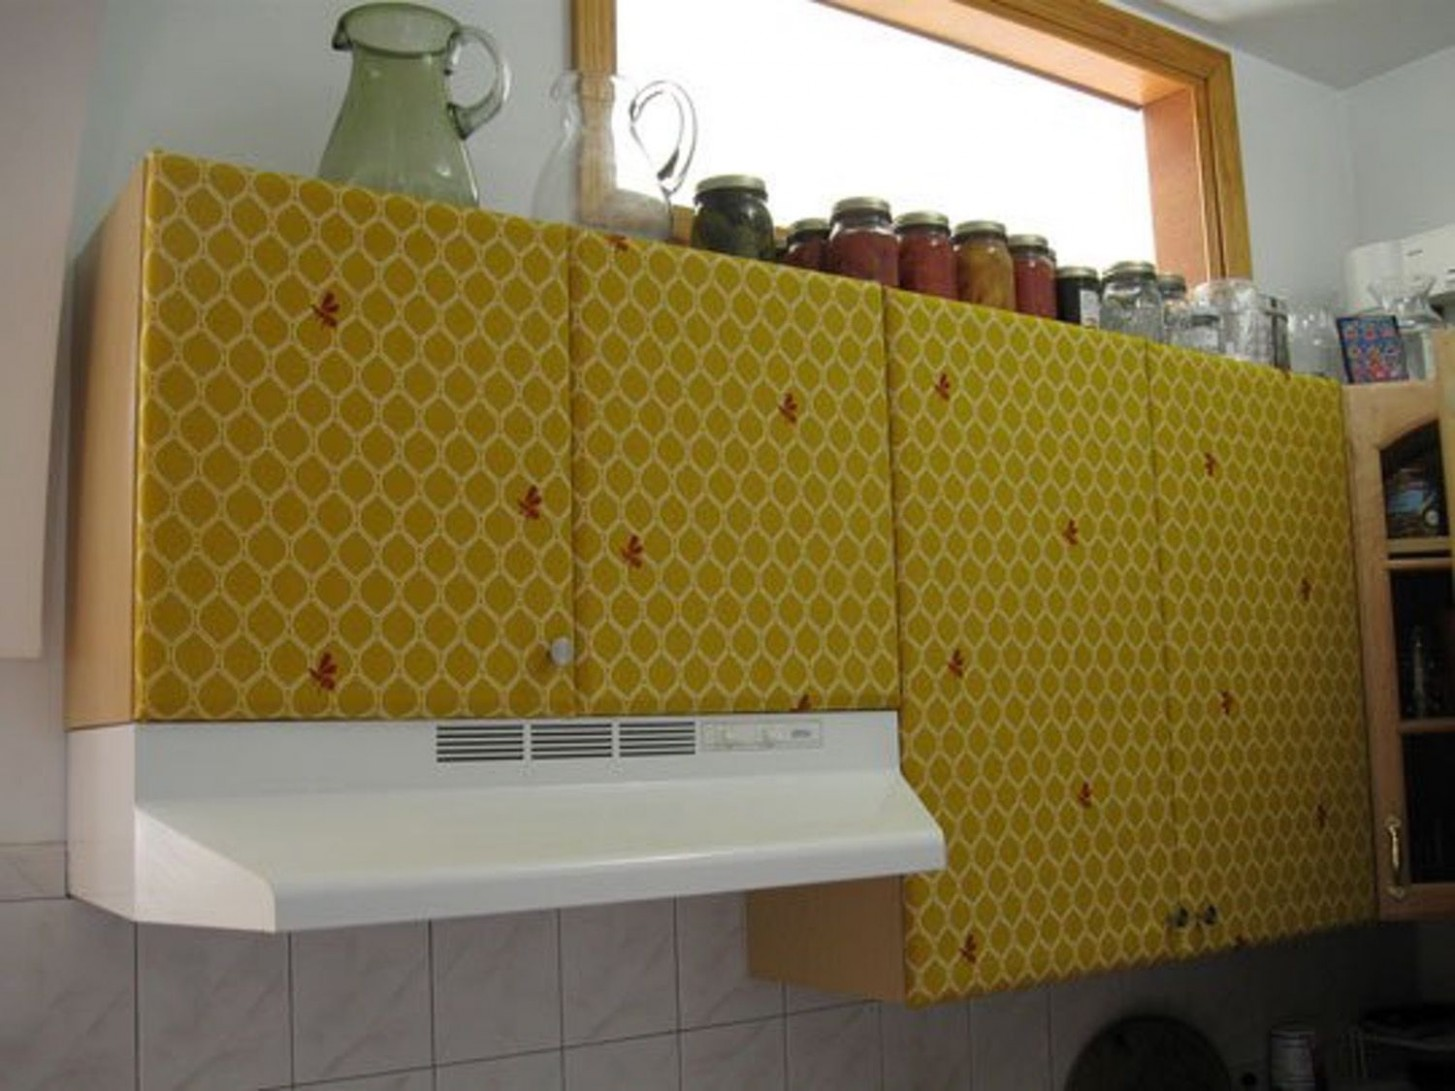 How To: Cover the Kitchen Cabinets In Fabric  Contact paper  - Temporary Kitchen Cabinet Covers